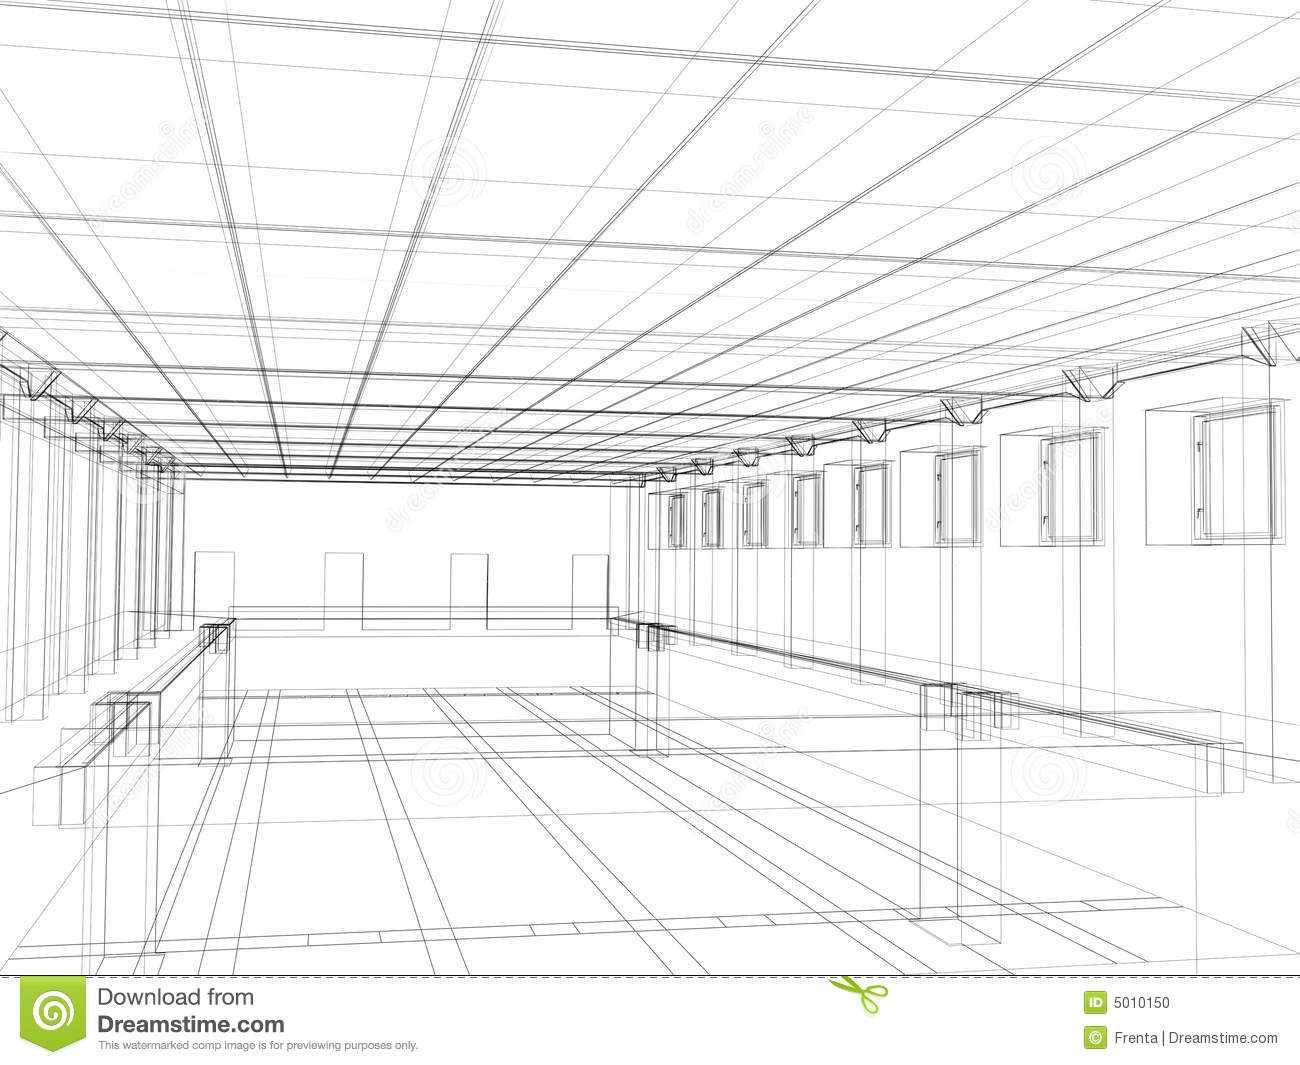 3d Sketch Of An Interior Public Building Stock Photo - Image: 5010150